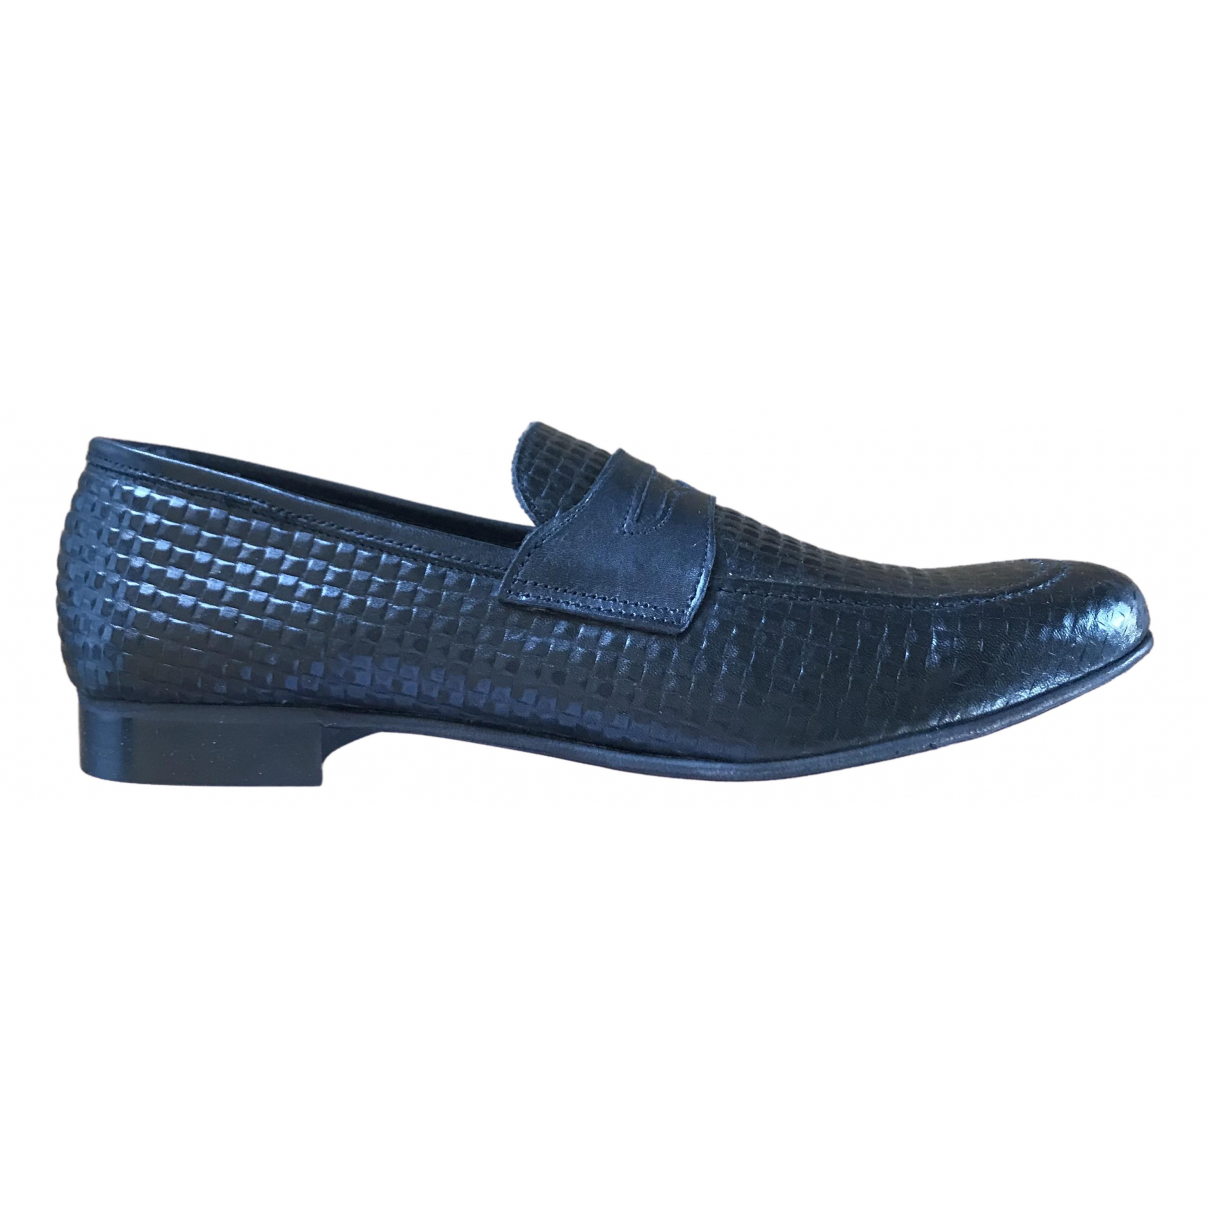 Daniele Alessandrini \N Black Leather Flats for Men 45 EU